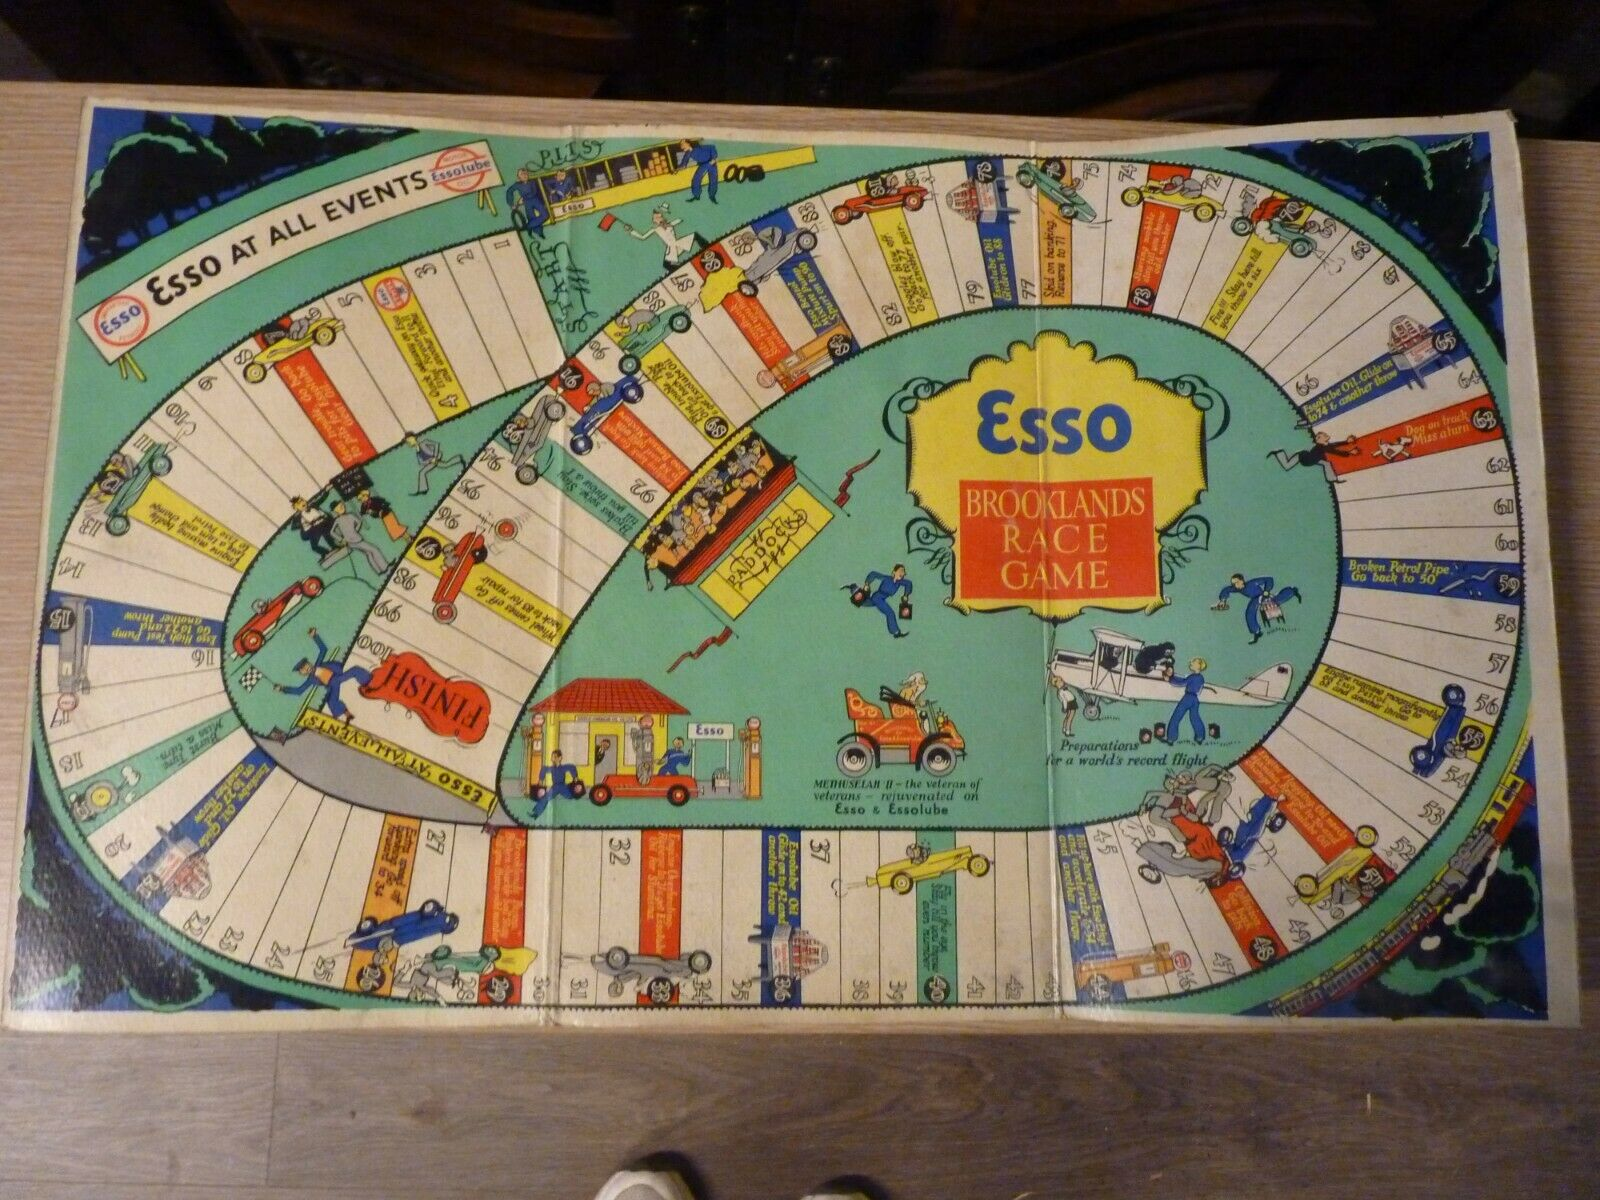 RARE VINTAGE COLLECTABLE ESSO (PRATTS) HIGH TEST BROOKLANDS RACE GAME BOARD 50'S